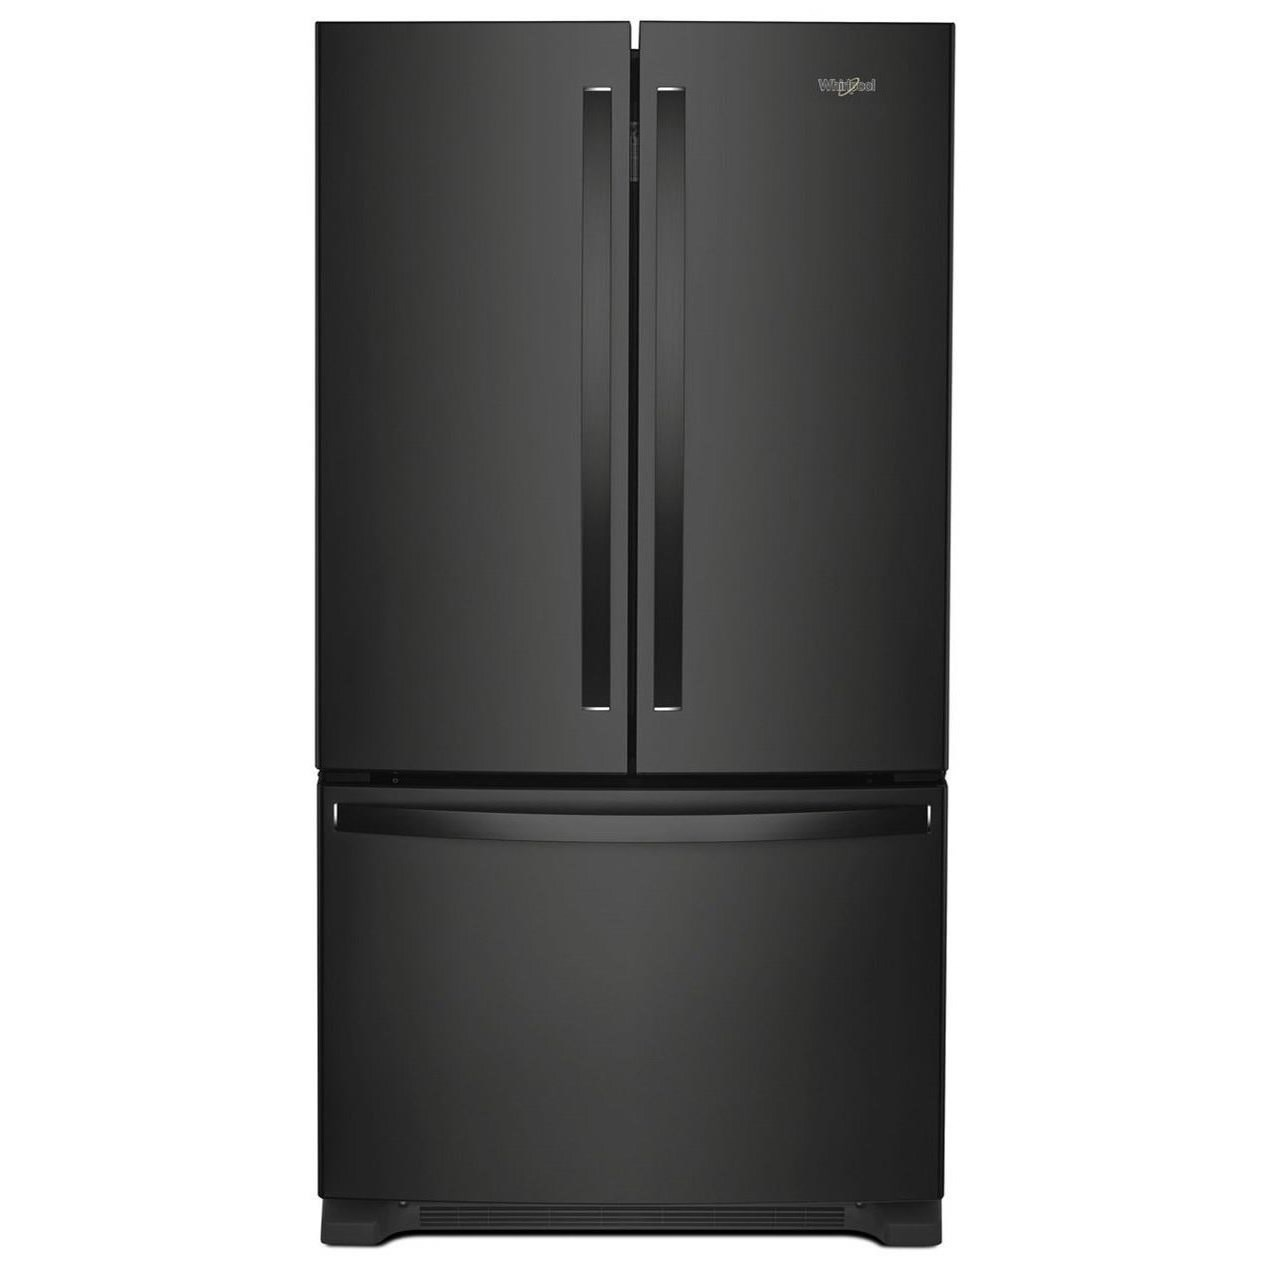 French Door Refrigerators 36-inch Wide French Door Refrigerator by Whirlpool at Story & Lee Furniture